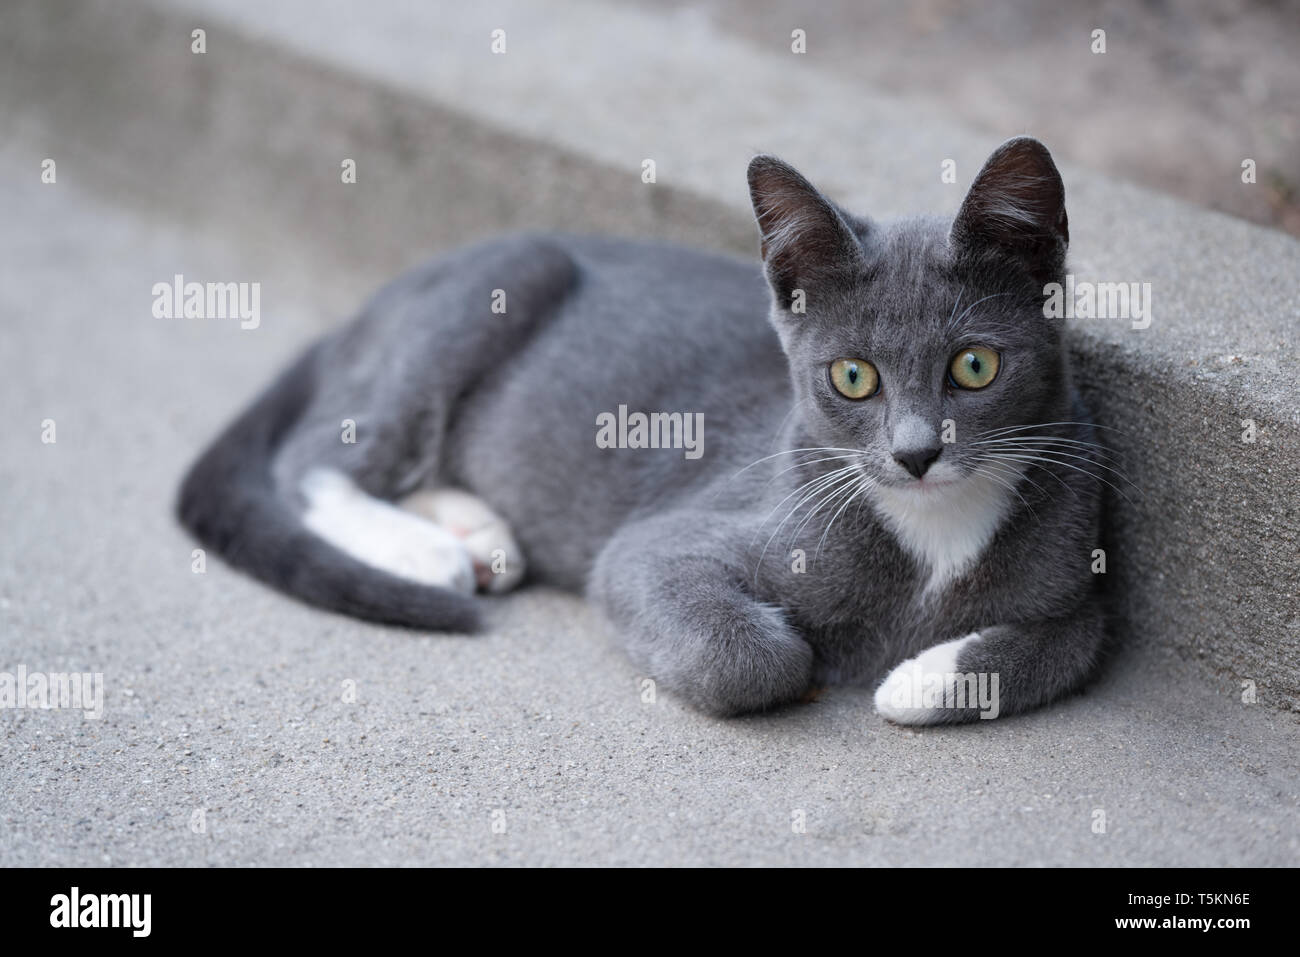 Lovely kitty with grey and white fur relaxing but curious - Stock Image